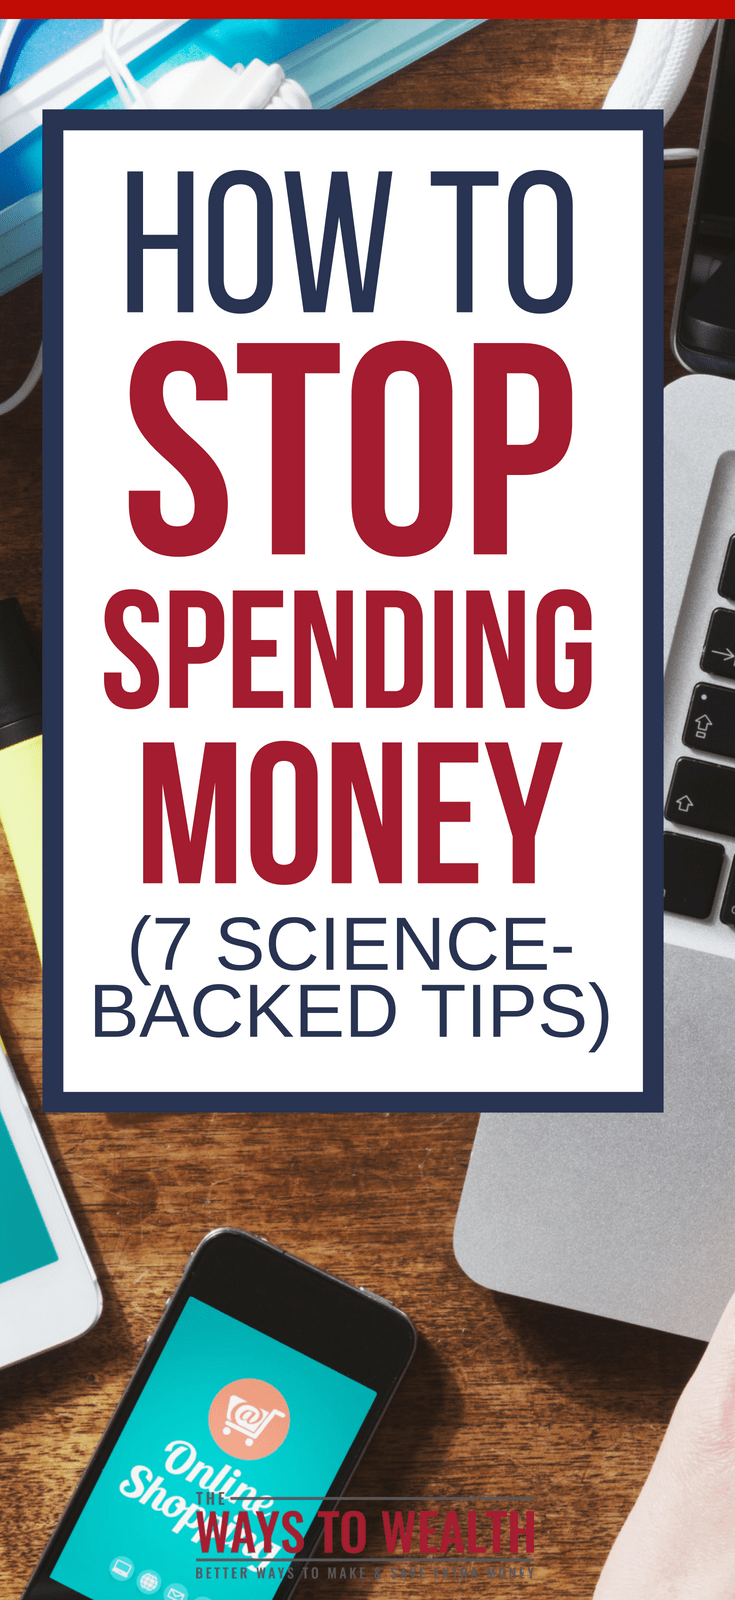 How to Stop Spending Money You Don't Havebudgeting tips for beginners | couples budgeting saving money | budgeting hacks frugal living | how to stick to a budget tips | stop spending money on stupid stuff | stop spending money tips frugal living#BUDGET #BUDGETING #MONEYMANAGEMENT